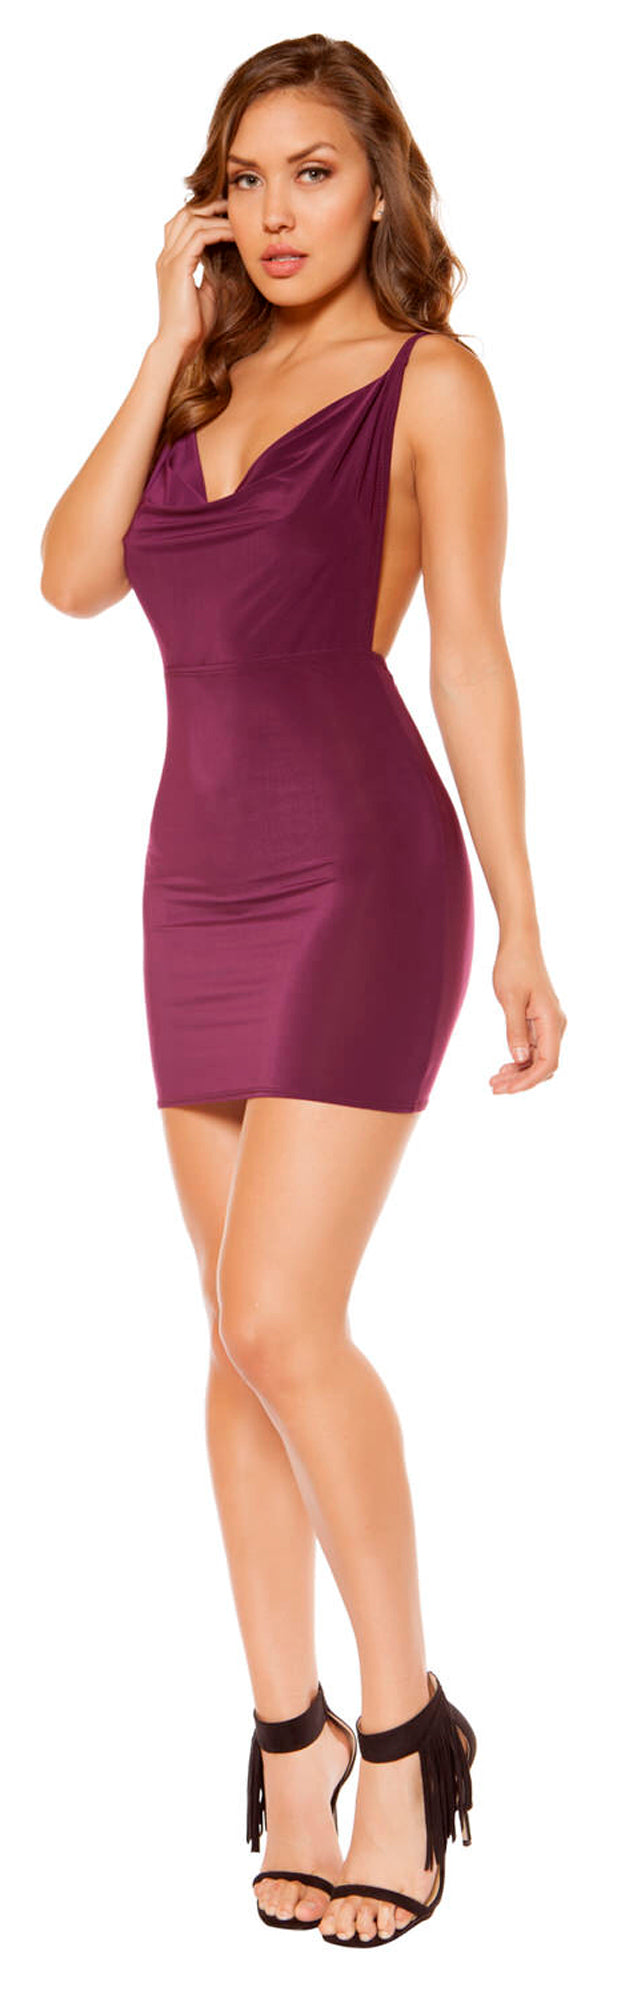 RM-3350 cowl neck mini dress PLUM front